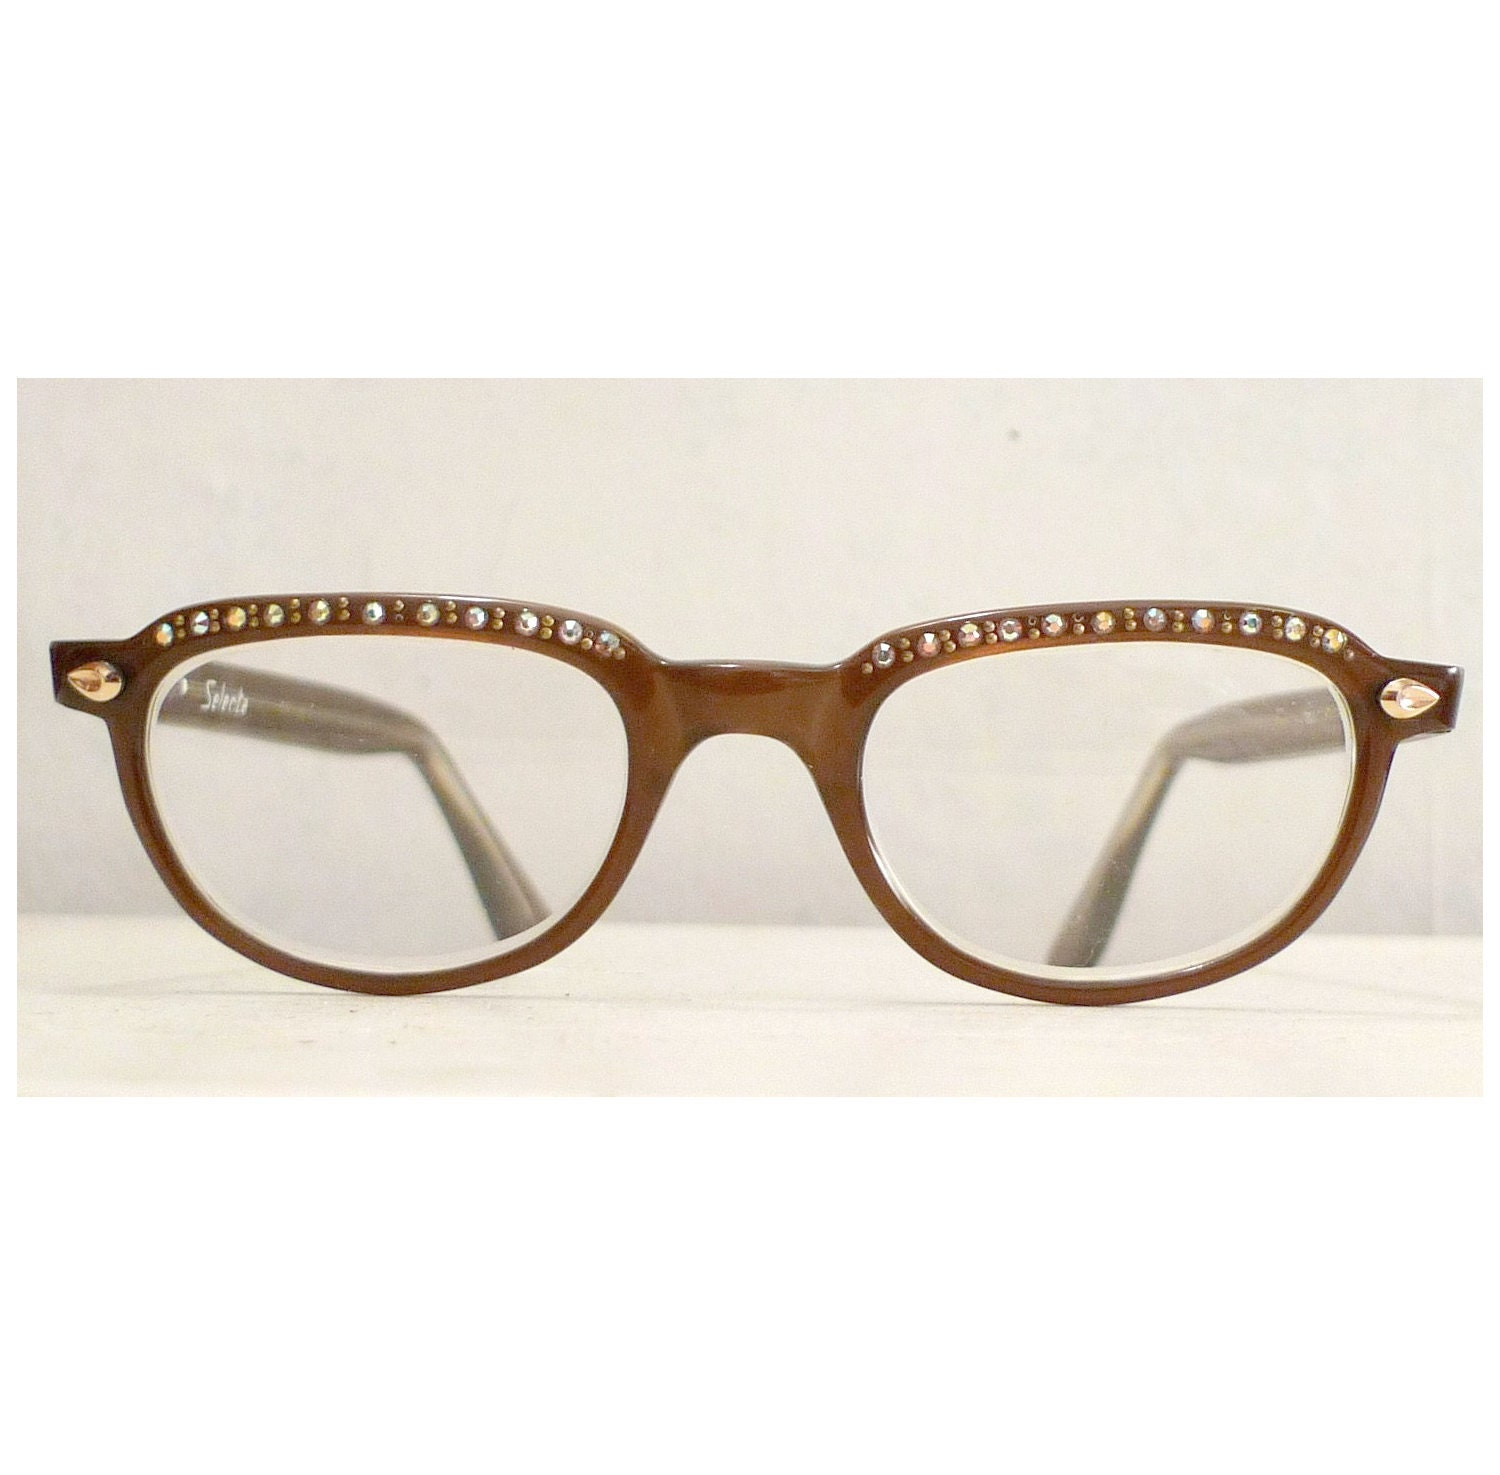 Vintage Rhinestones Brown Cat Eye Glasses Frame Embellished